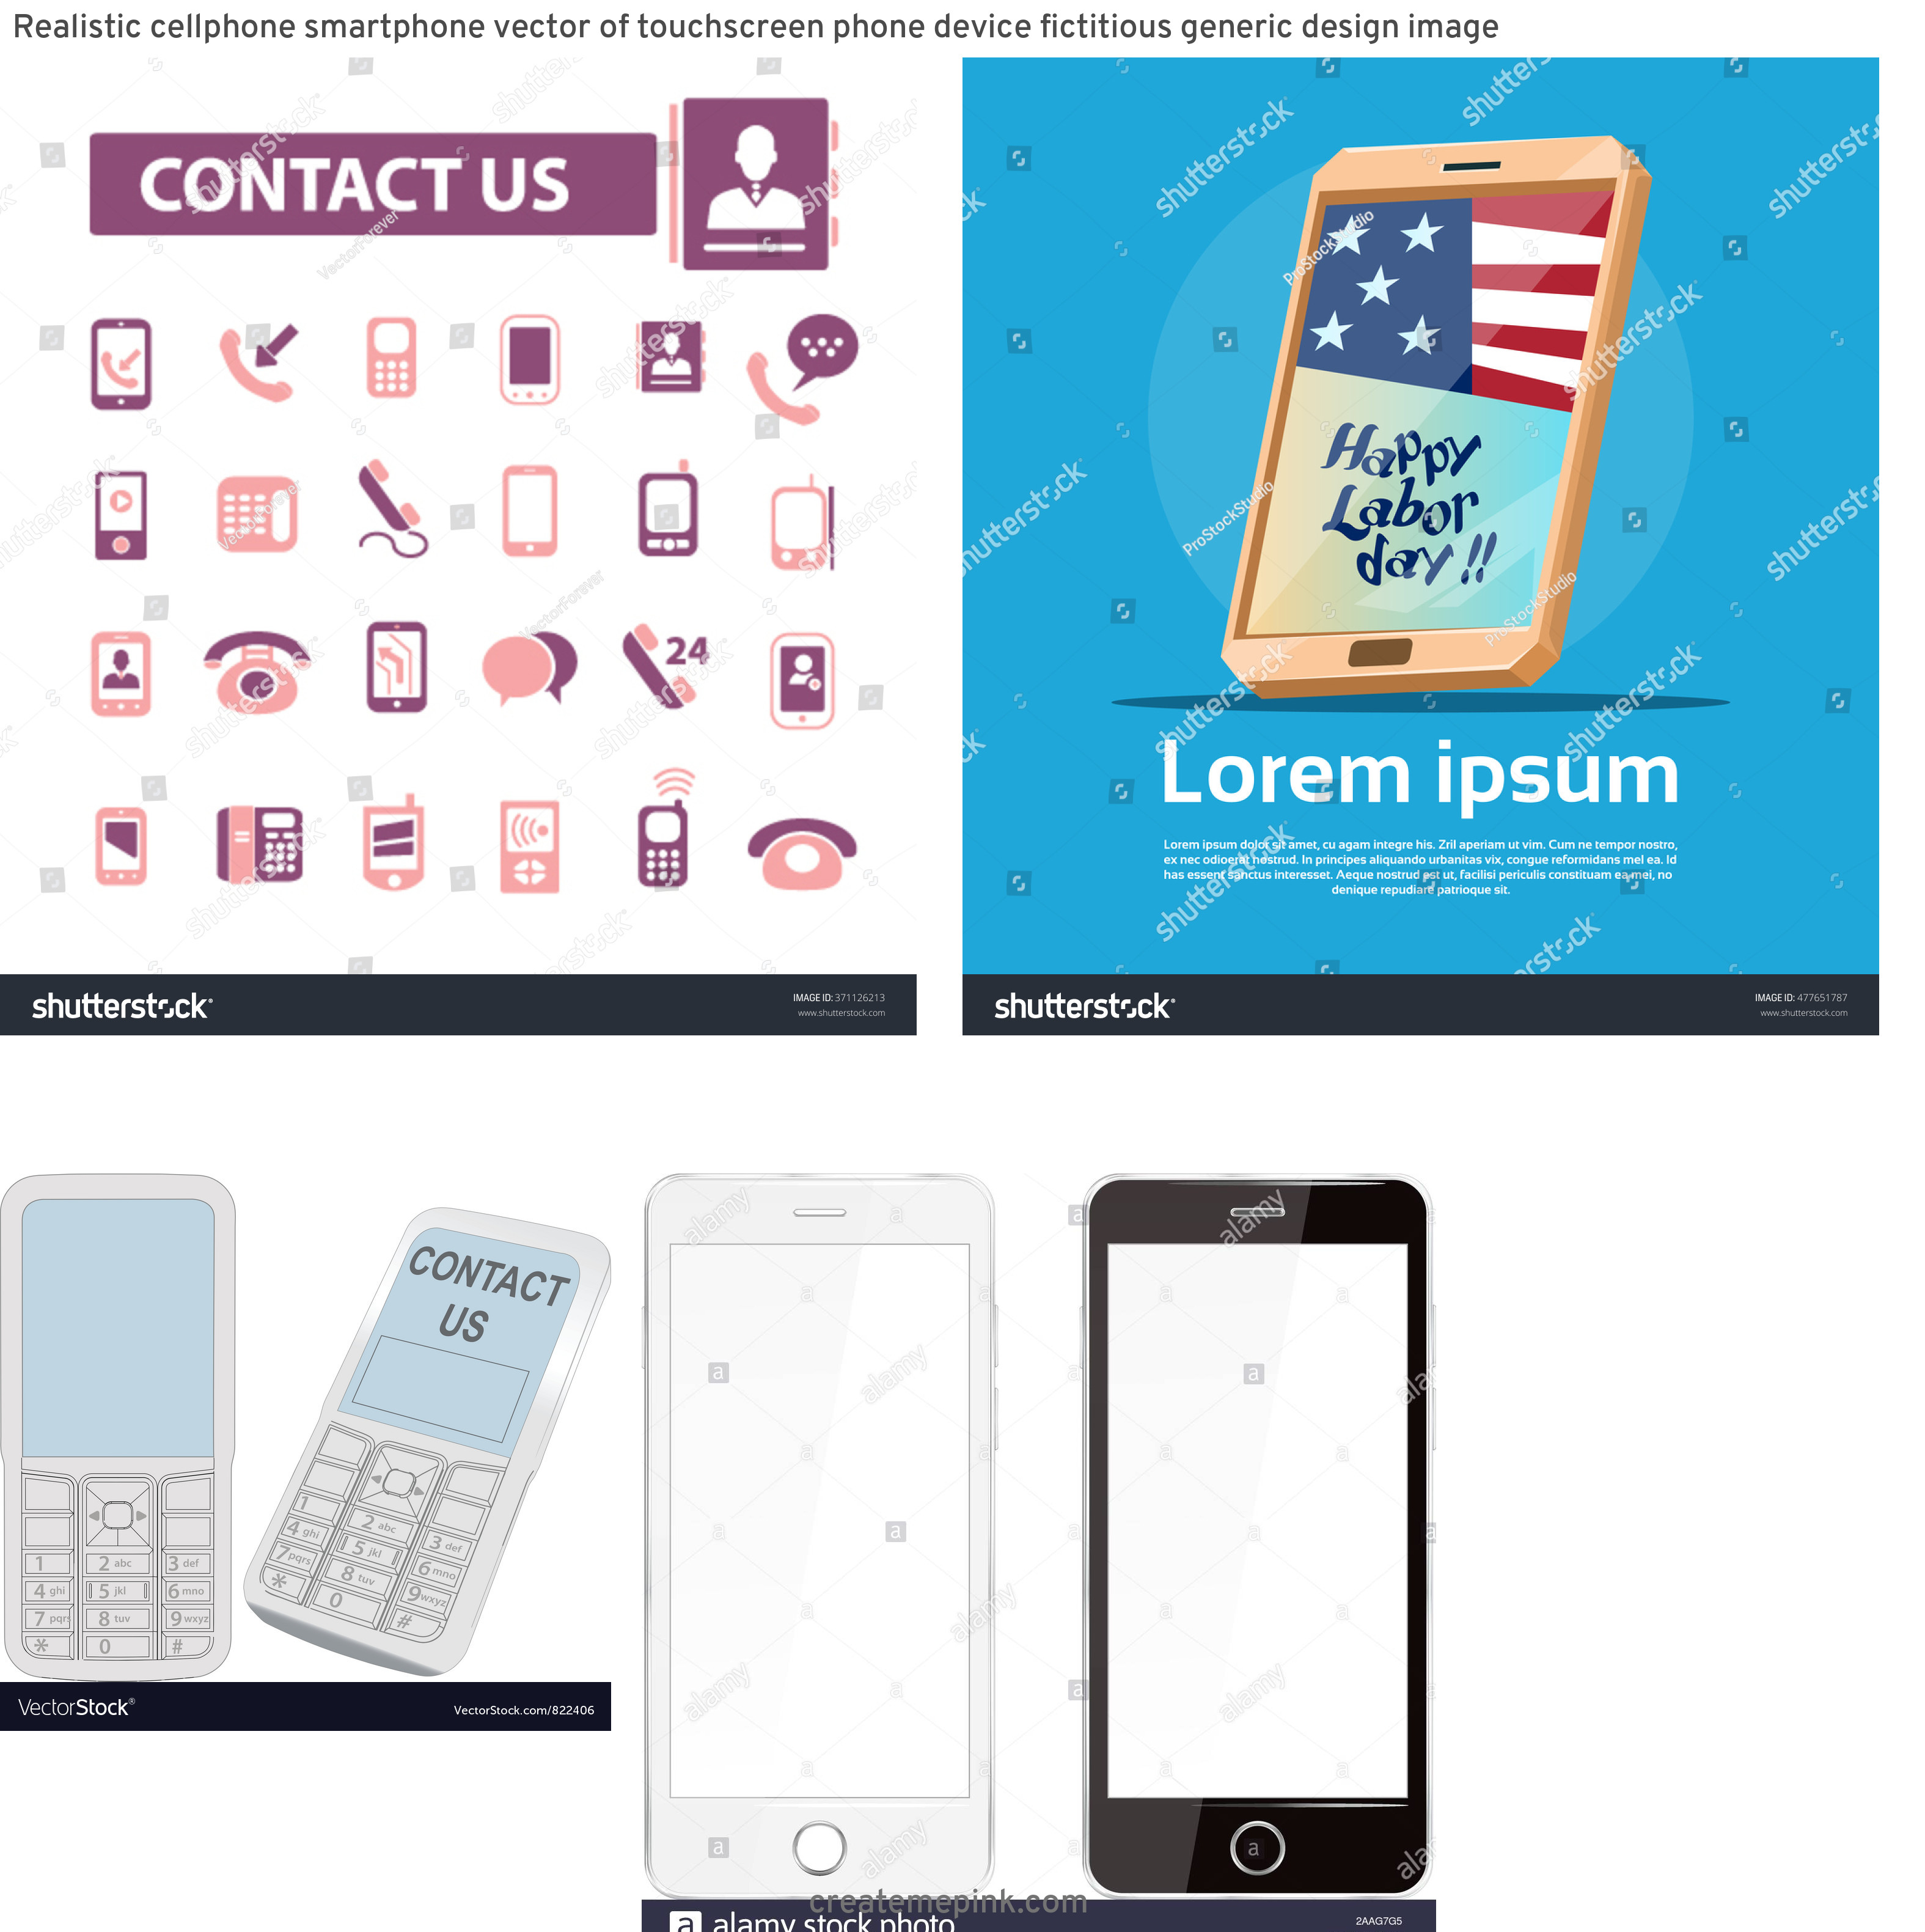 U.S. Cellular Phone Vector: Realistic Cellphone Smartphone Vector Of Touchscreen Phone Device Fictitious Generic Design Image